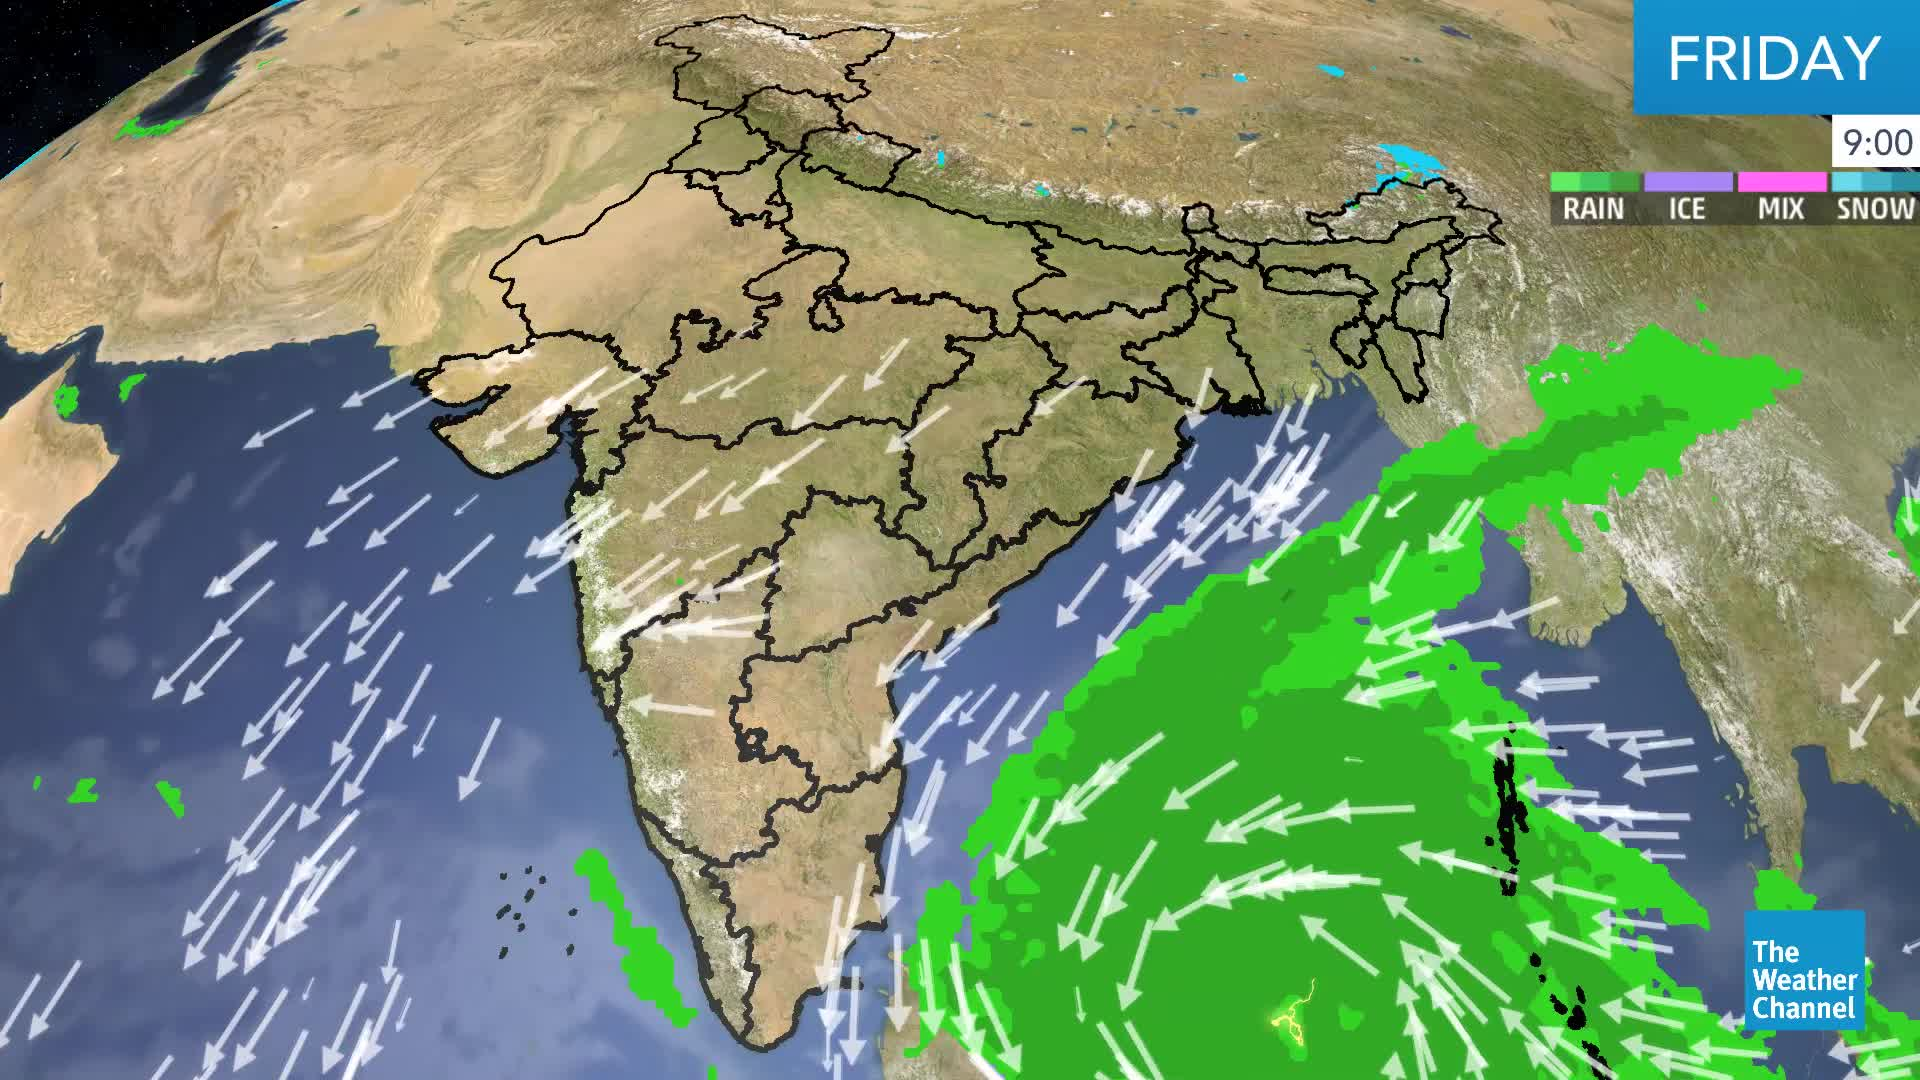 Cyclone Phethai May Make Landfall in Andhra Pradesh Monday Night